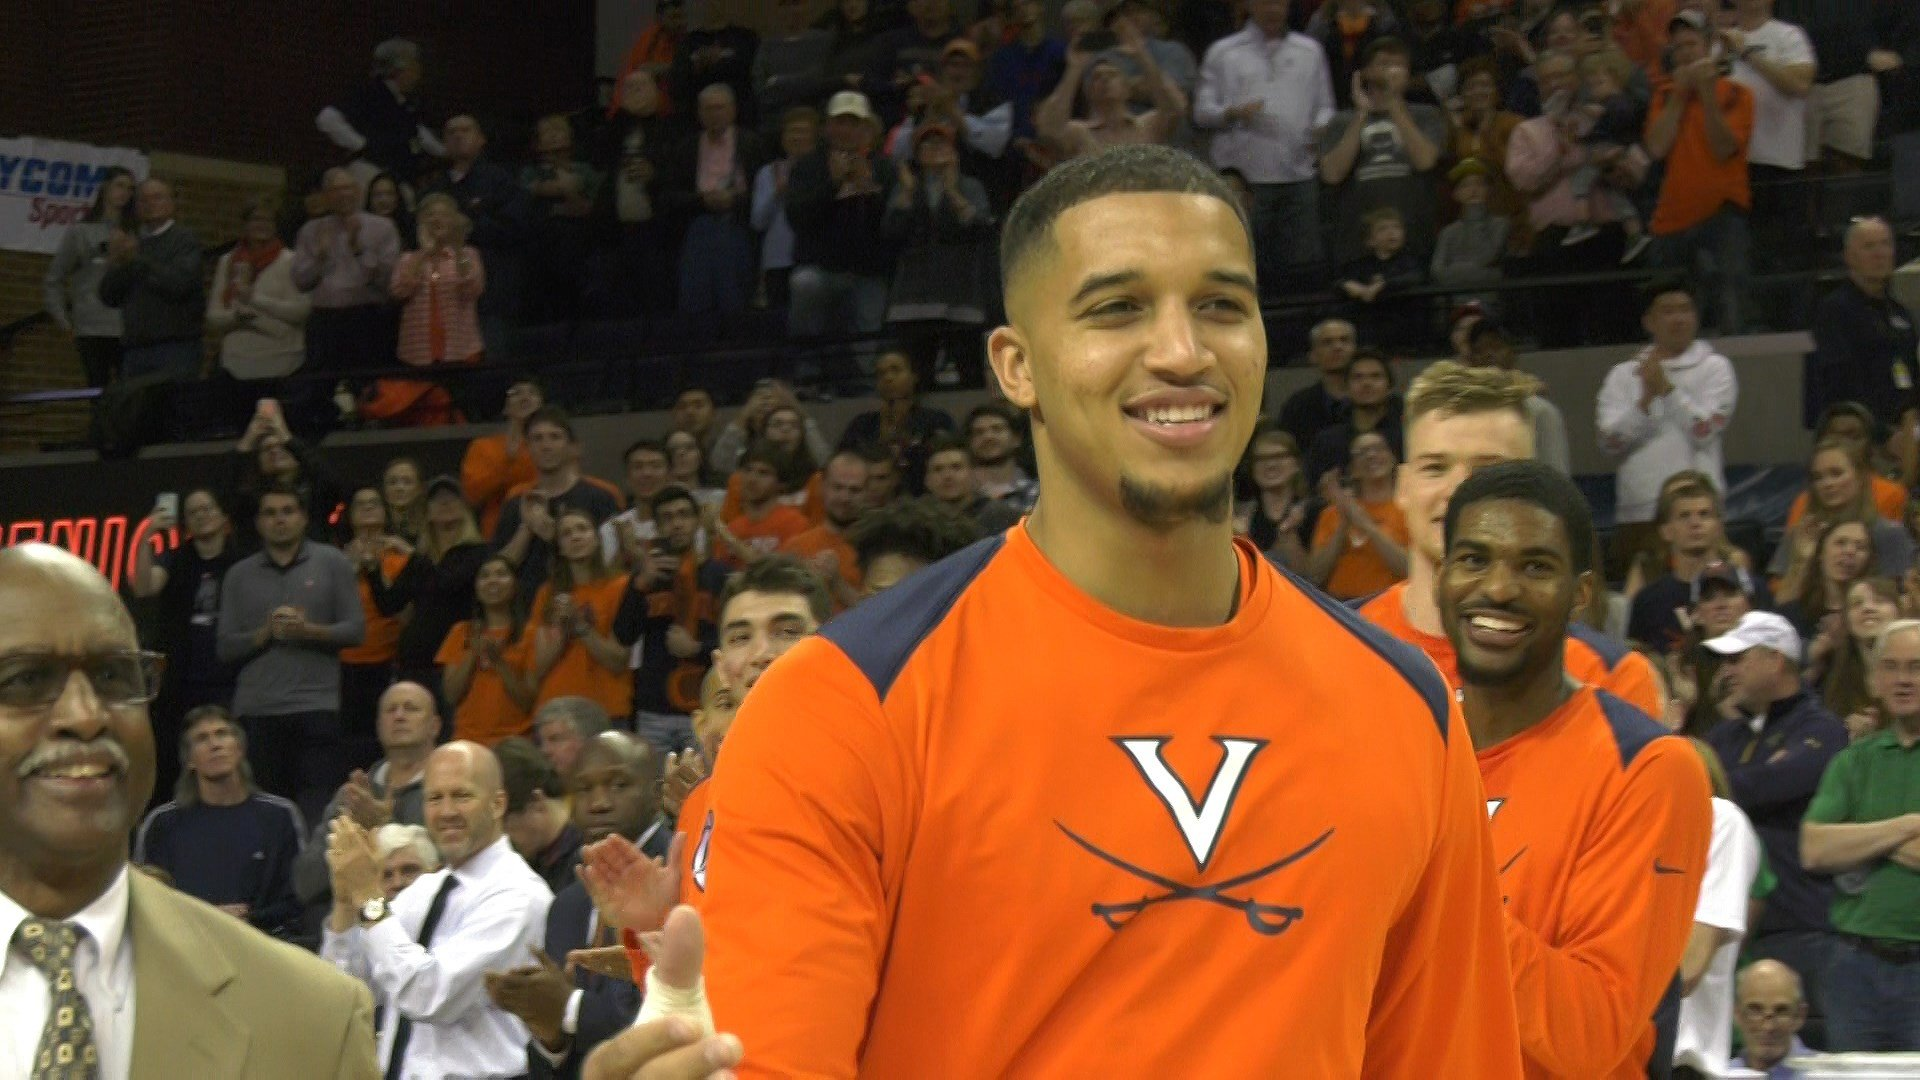 Senior Isaiah Wilkins was named the ACC Defensive Player of the Year